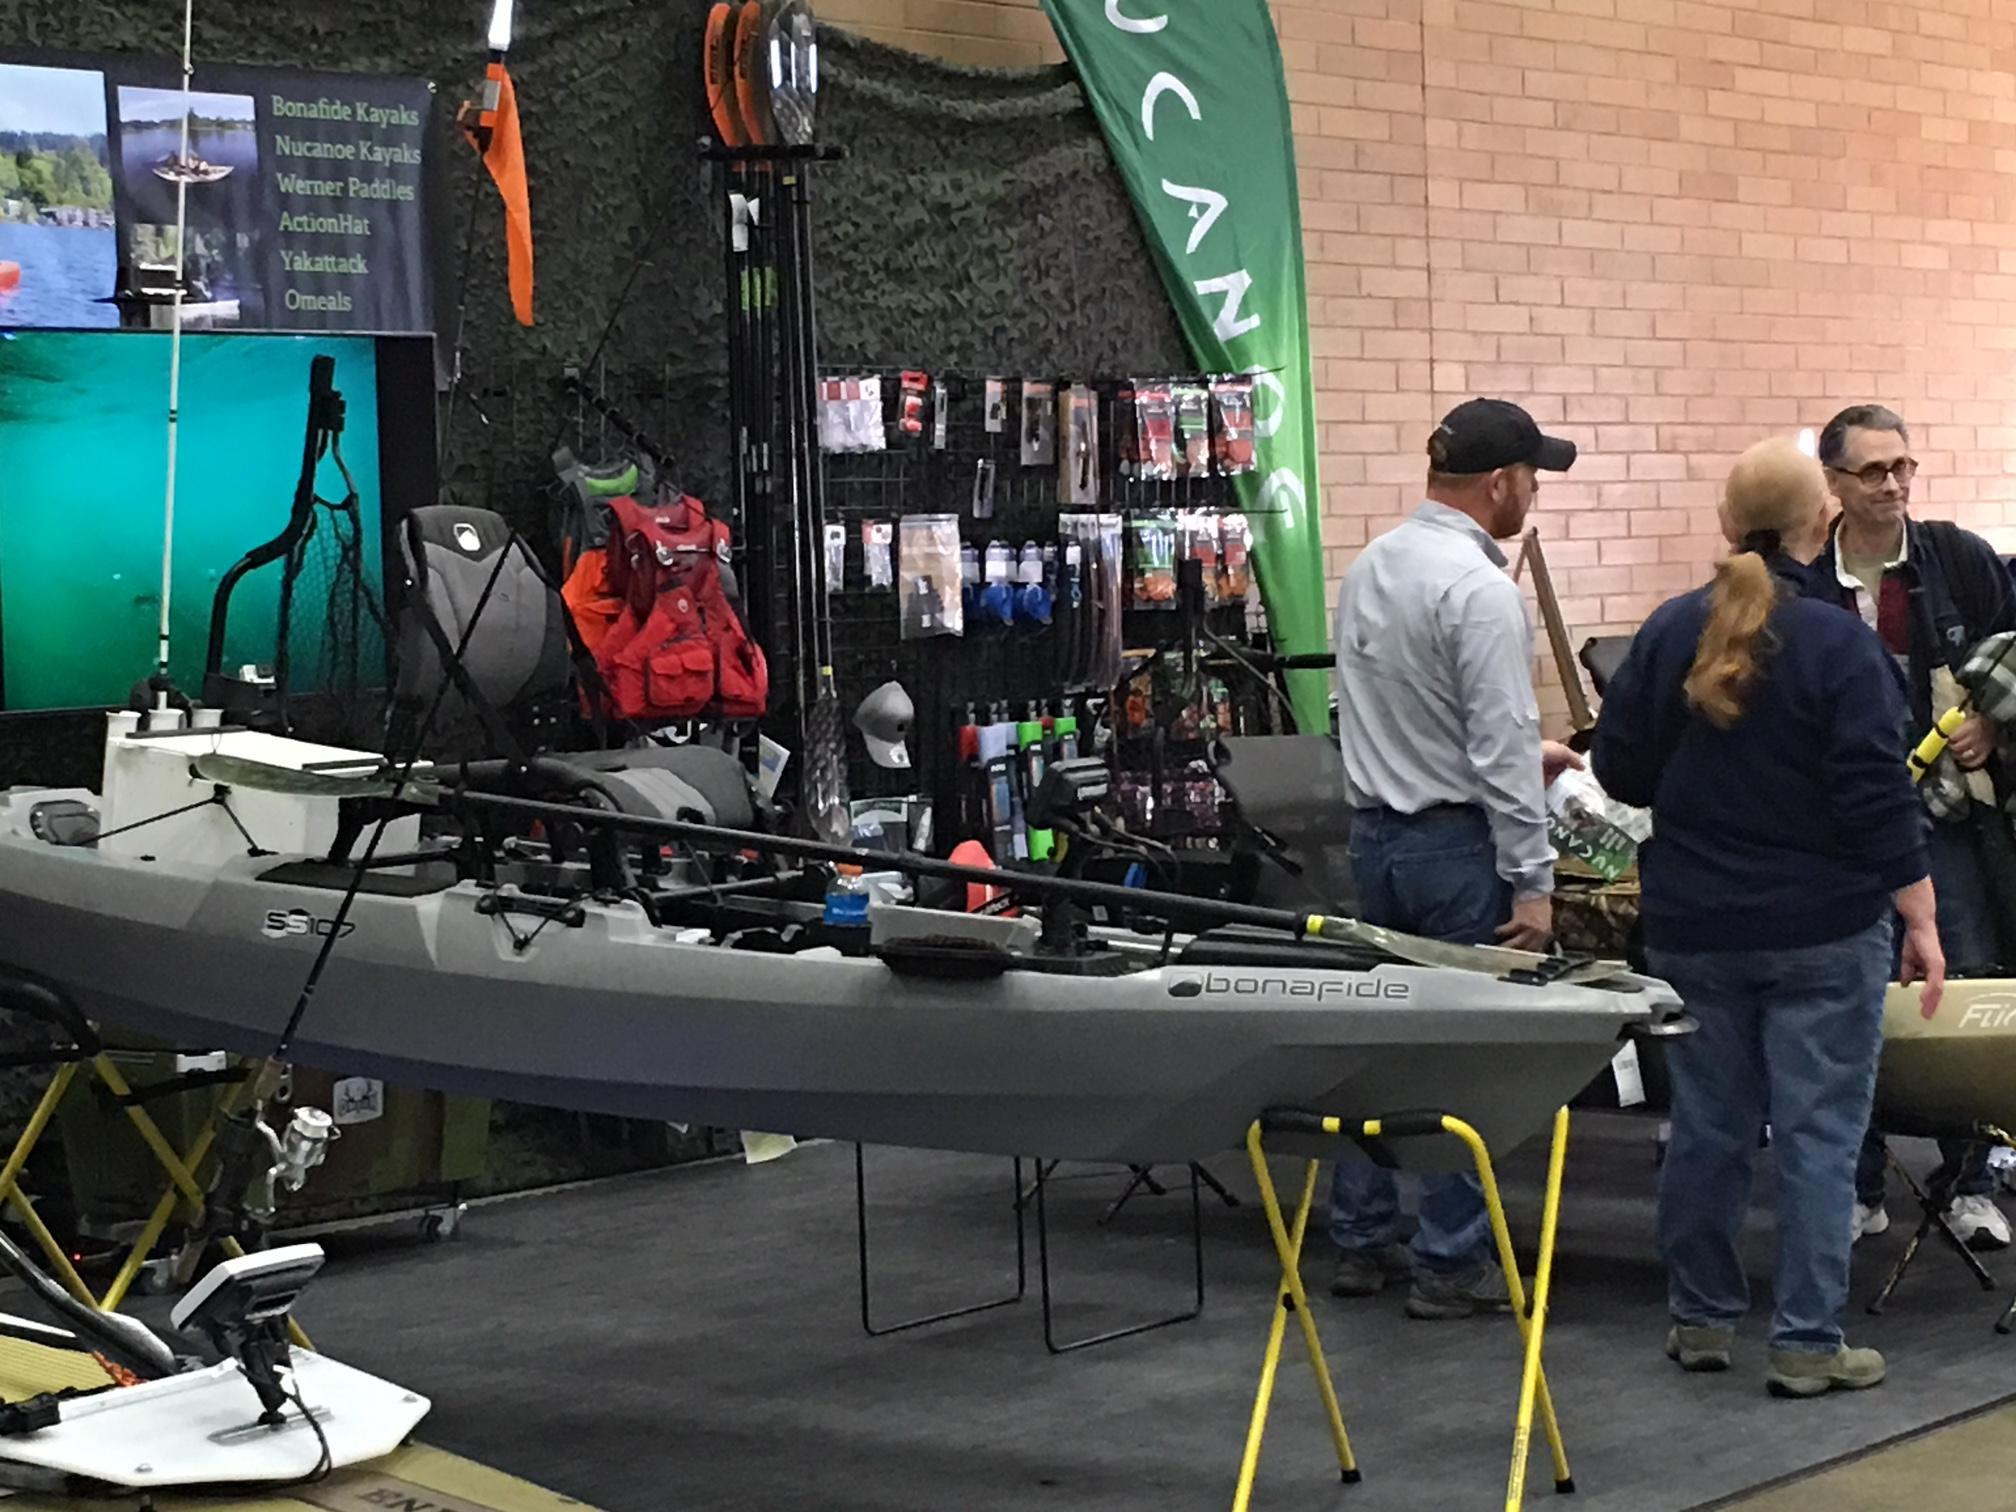 At the 2019 Washington Sportsmen's Show, you'll find seminars, the latest in outdoor tech, sales, cooking competitions, and more!